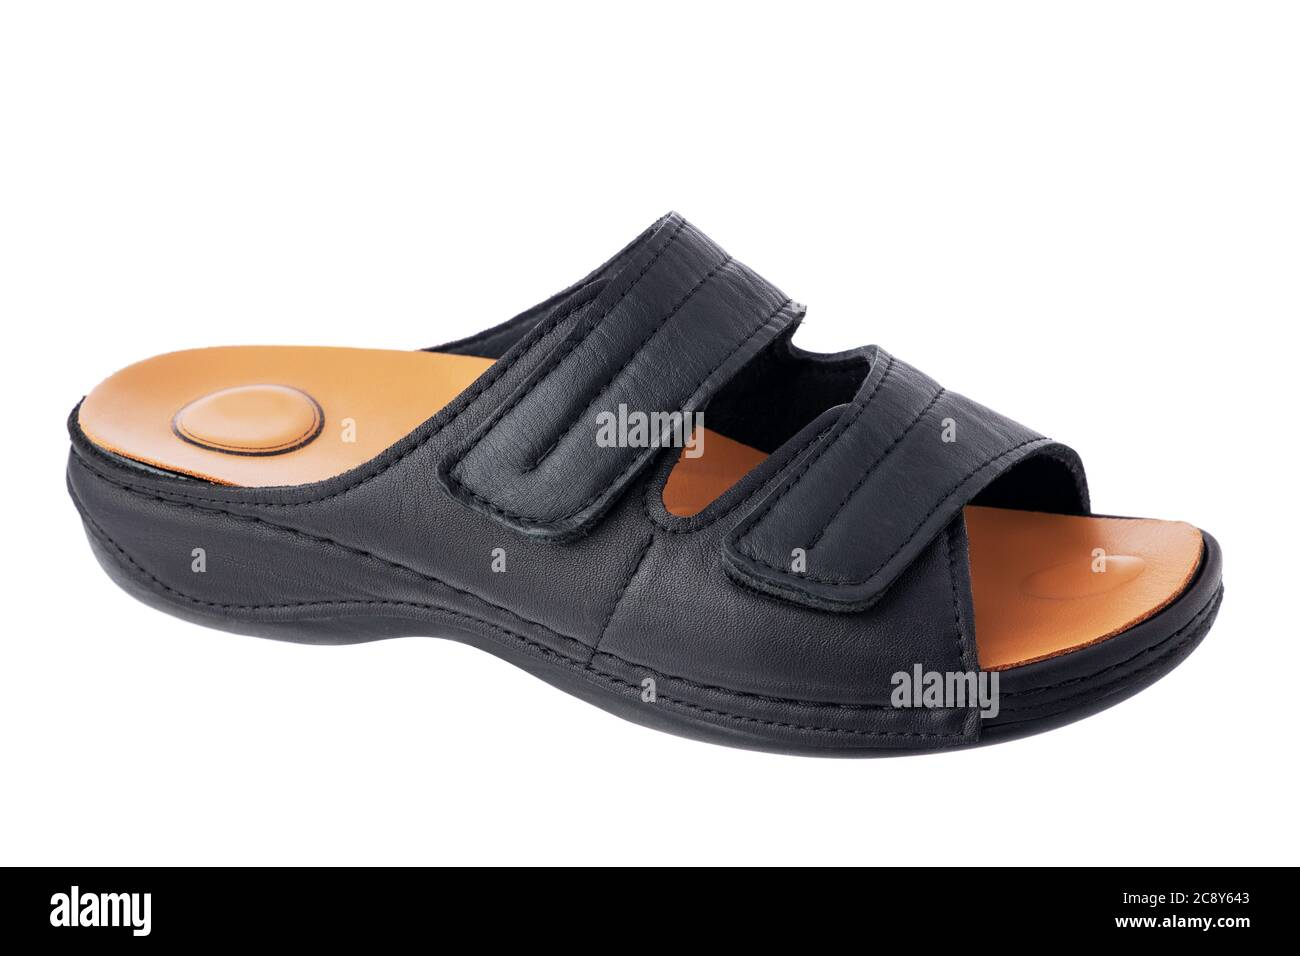 Orthopedic leather sandals or slippers